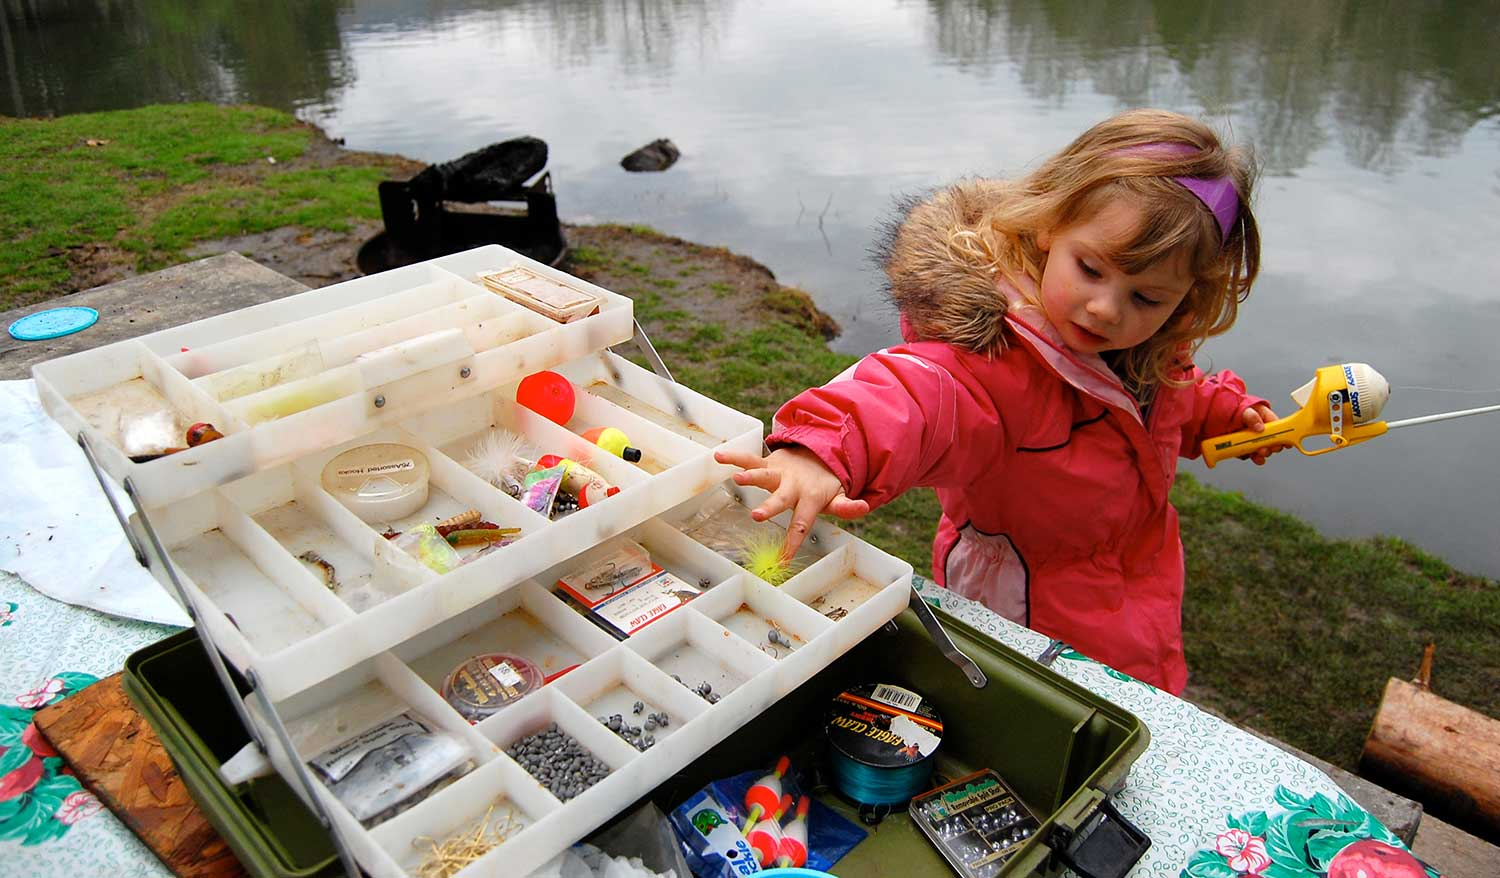 Isabella Ball, 3, examines a fishing lure while camping at Cove Lake State Park. photo by Jordan Vest - 2009